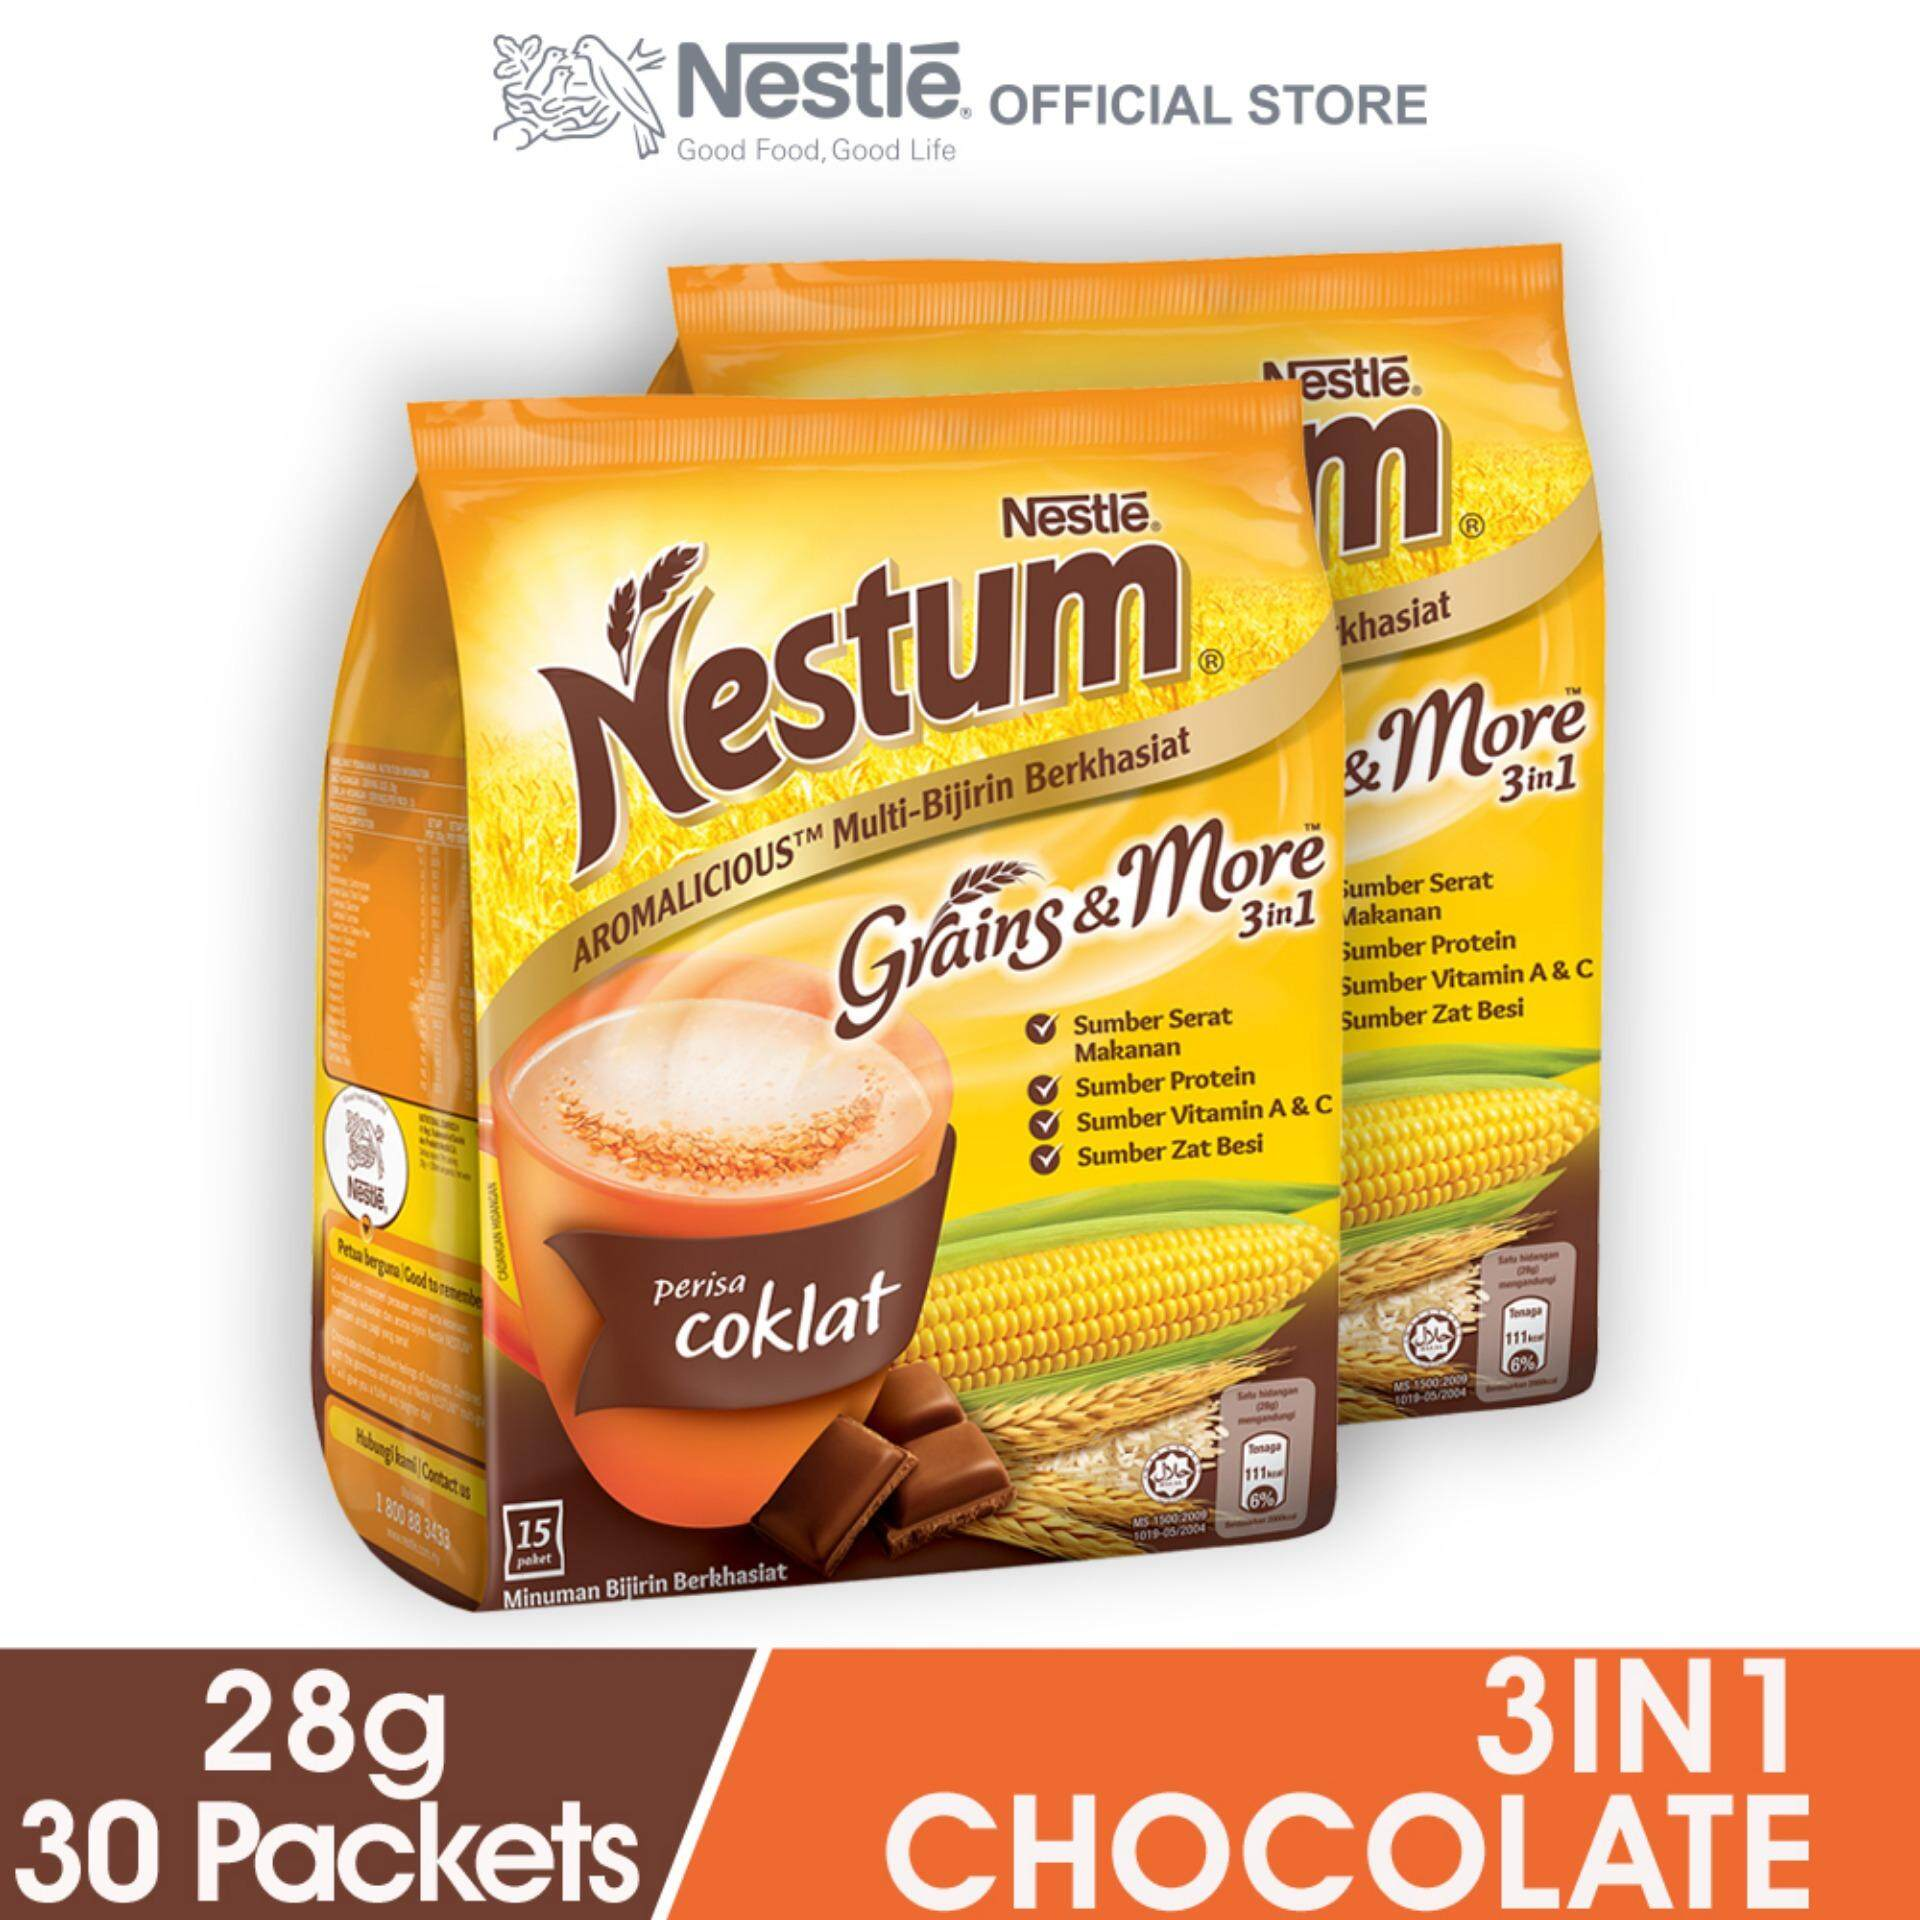 Nestle Nestum Grains & More 3in1 Chocolate 15 Packets 28g X2 Packs By Nestle Flagship Store.